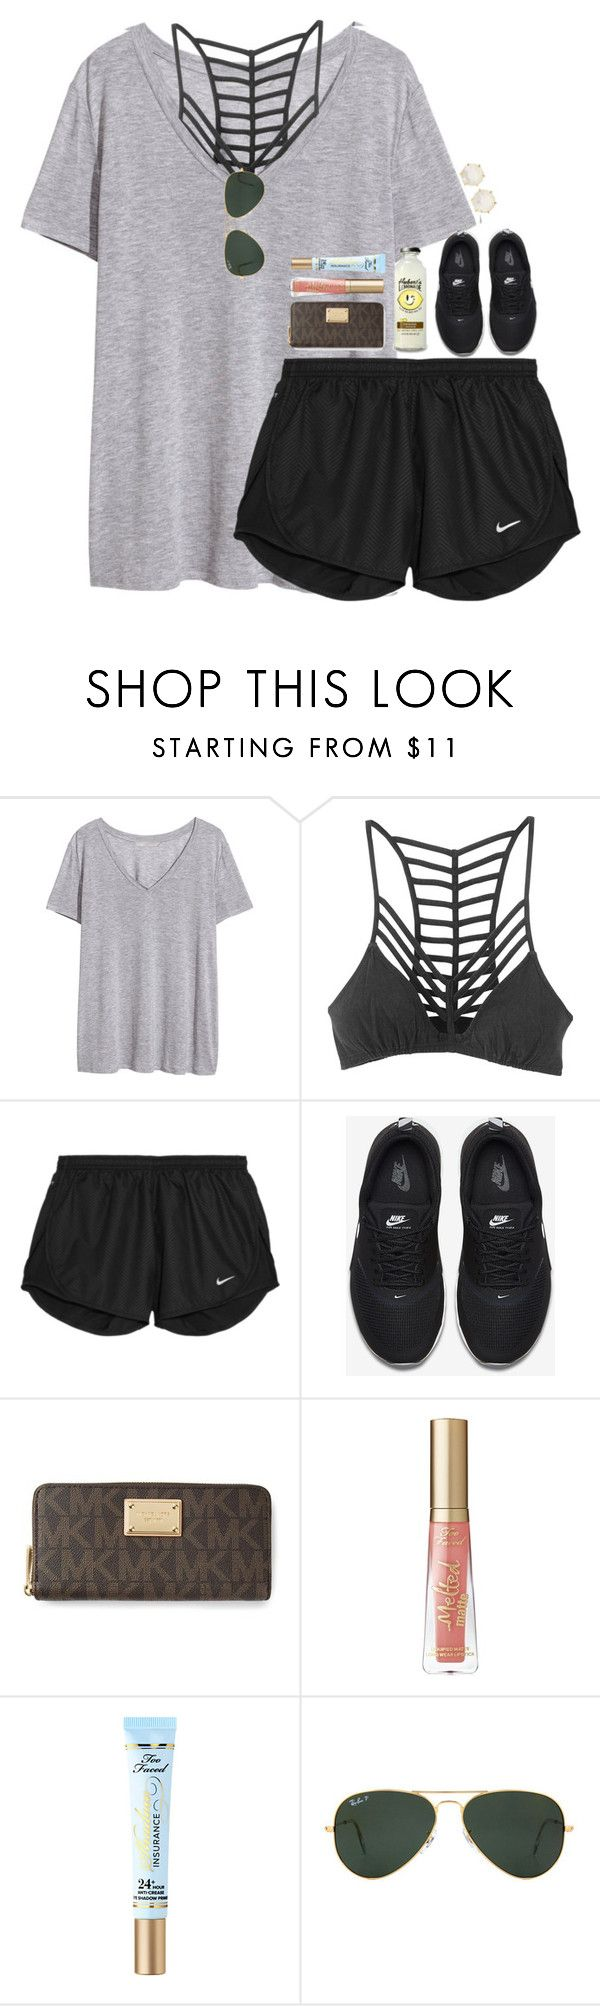 """clothes shopping!"" by hmcdaniel01 ❤ liked on Polyvore featuring H&M, RVCA, NIKE, MICHAEL Michael Kors, Too Faced Cosmetics, Ray-Ban, Ippolita and bestiesbacktoschool"